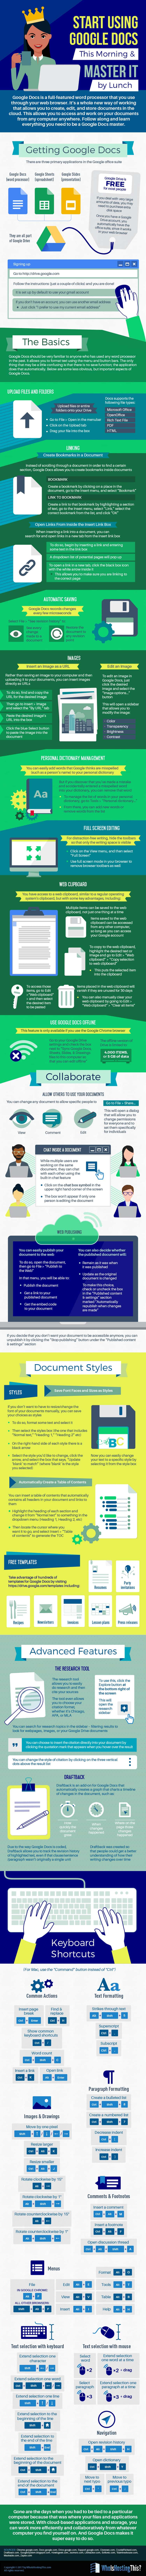 Become a Google Docs Expert in Few Short Hours - Infographic